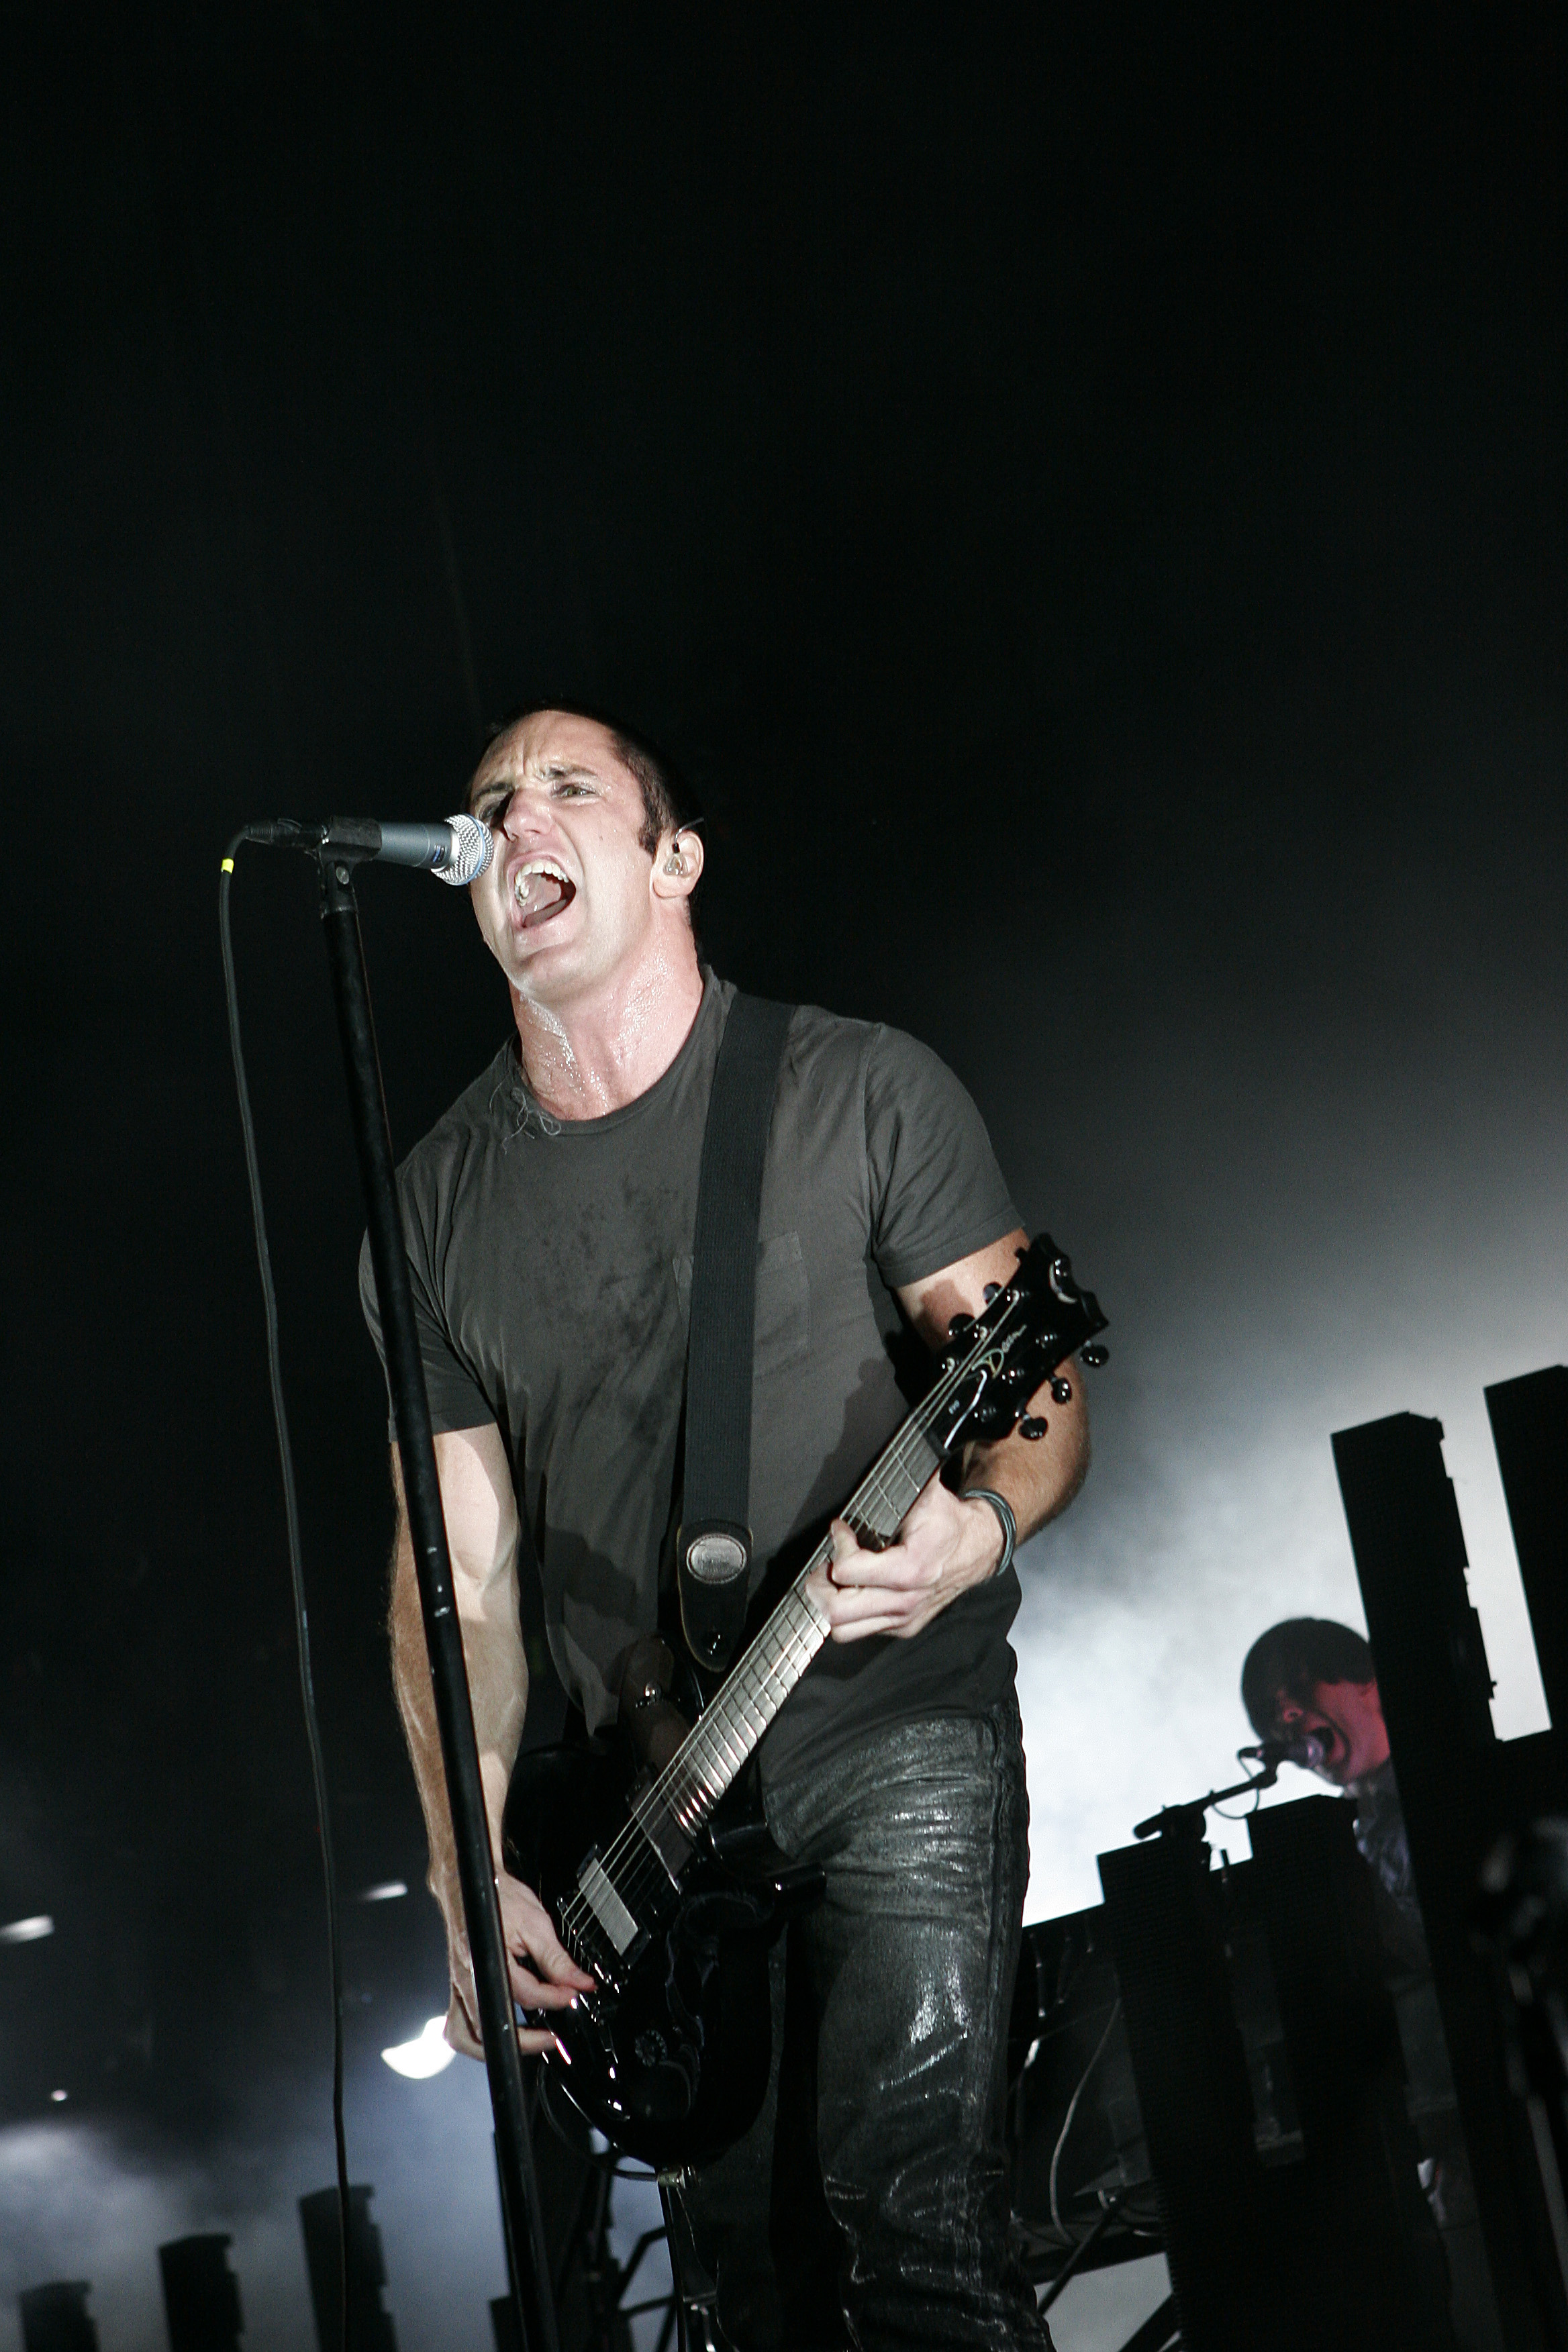 File:Nine Inch Nails at Voodoo 2005.jpg - Wikimedia Commons